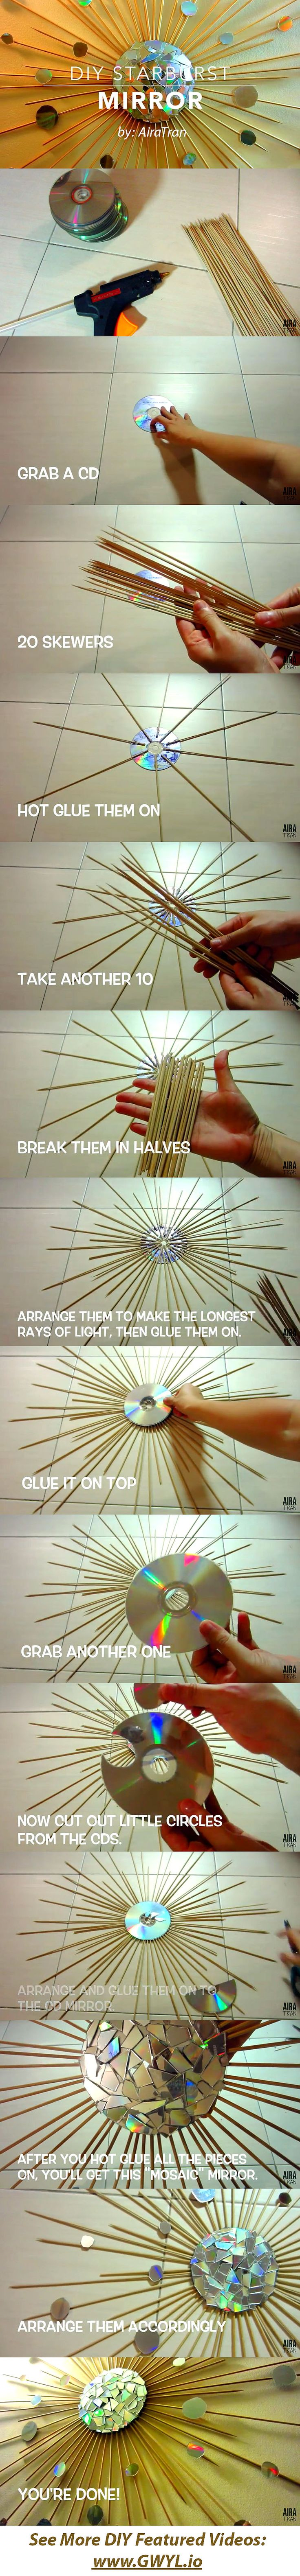 Do you have old CD's laying around your house? Why not turn them into a pretty home decor instead. See video and full written instructions here==> | DIY Starburst Mirror | gwyl.io/...